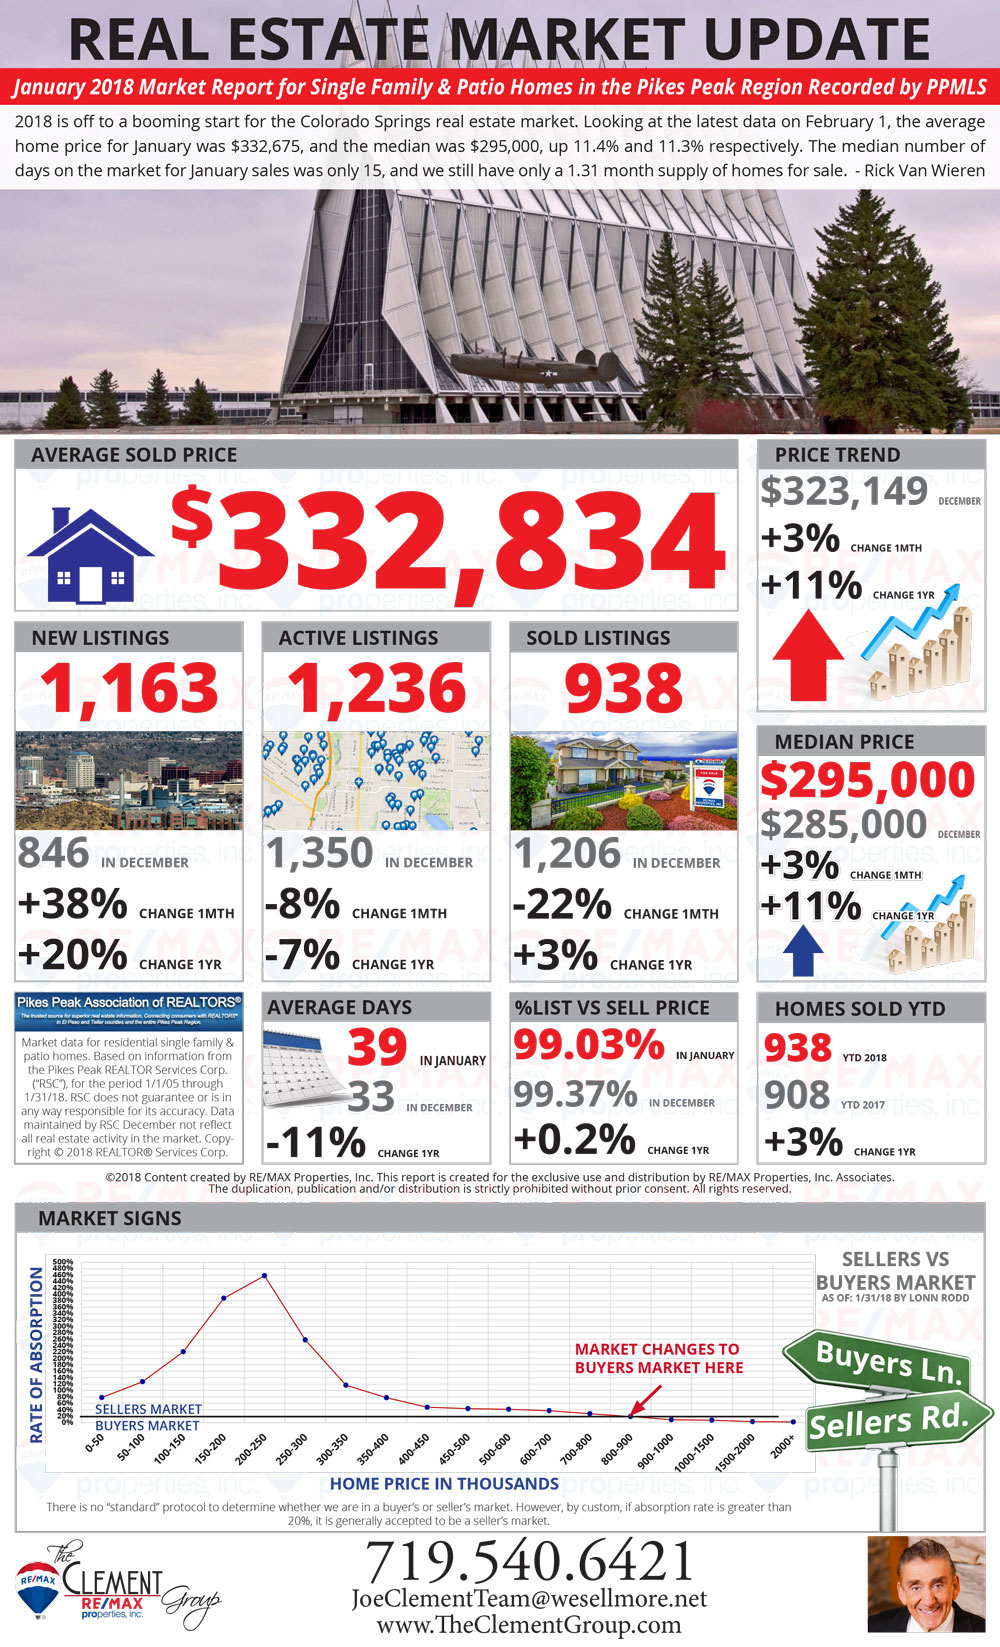 January 2018 Market Update - Colorado Springs Real Estate - Colorado Springs Homes For Sale